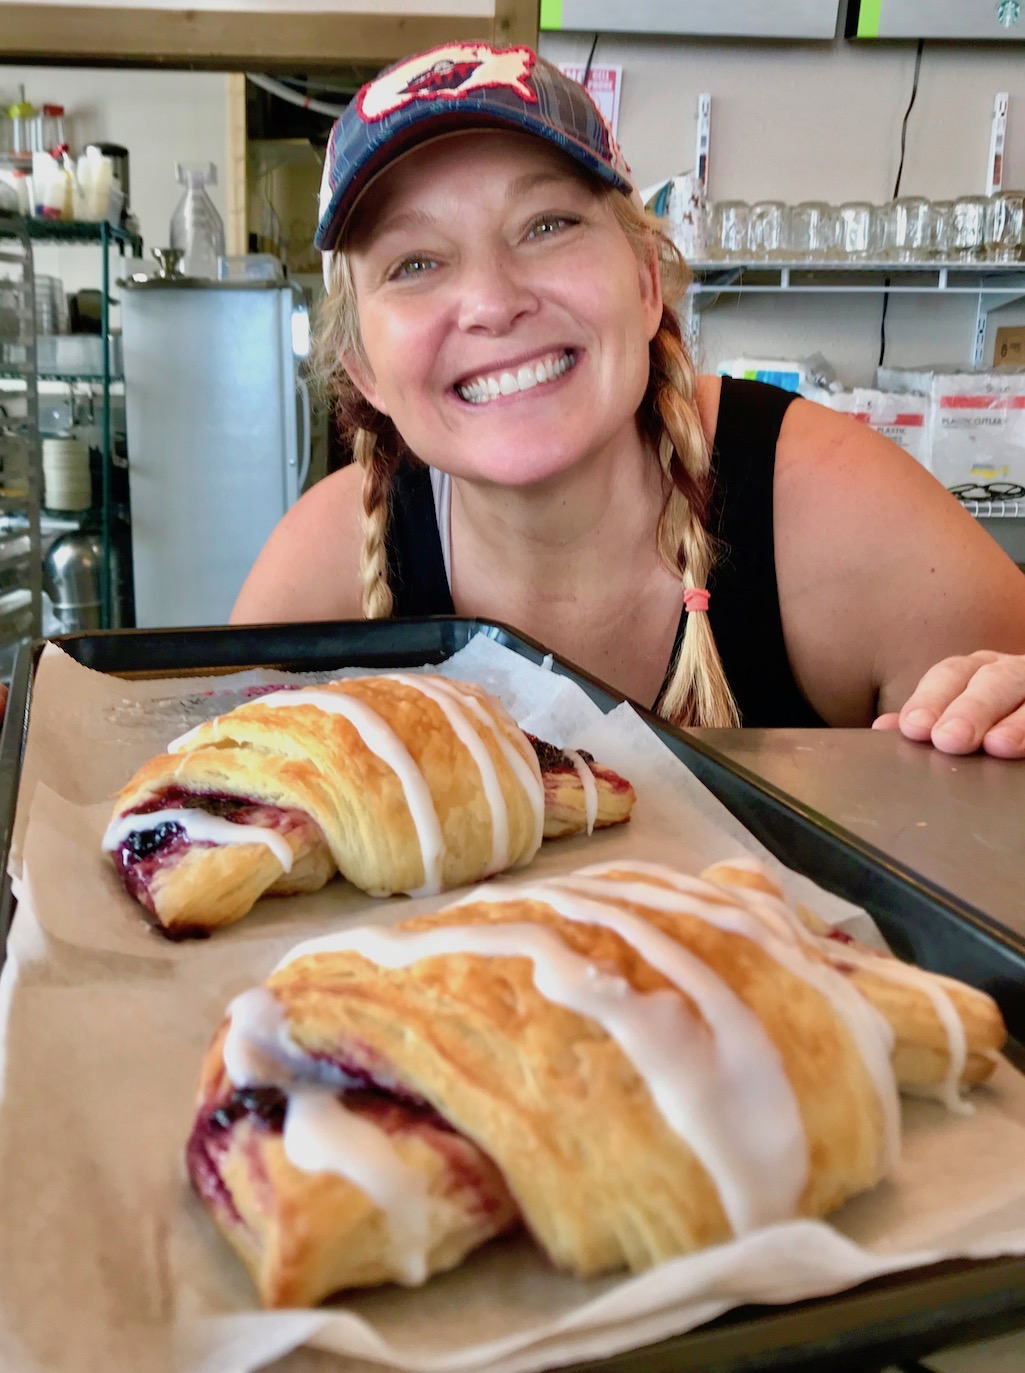 Kim At Mountain Mama Cafe in West Yellowstone with her Huckleberry Turnover